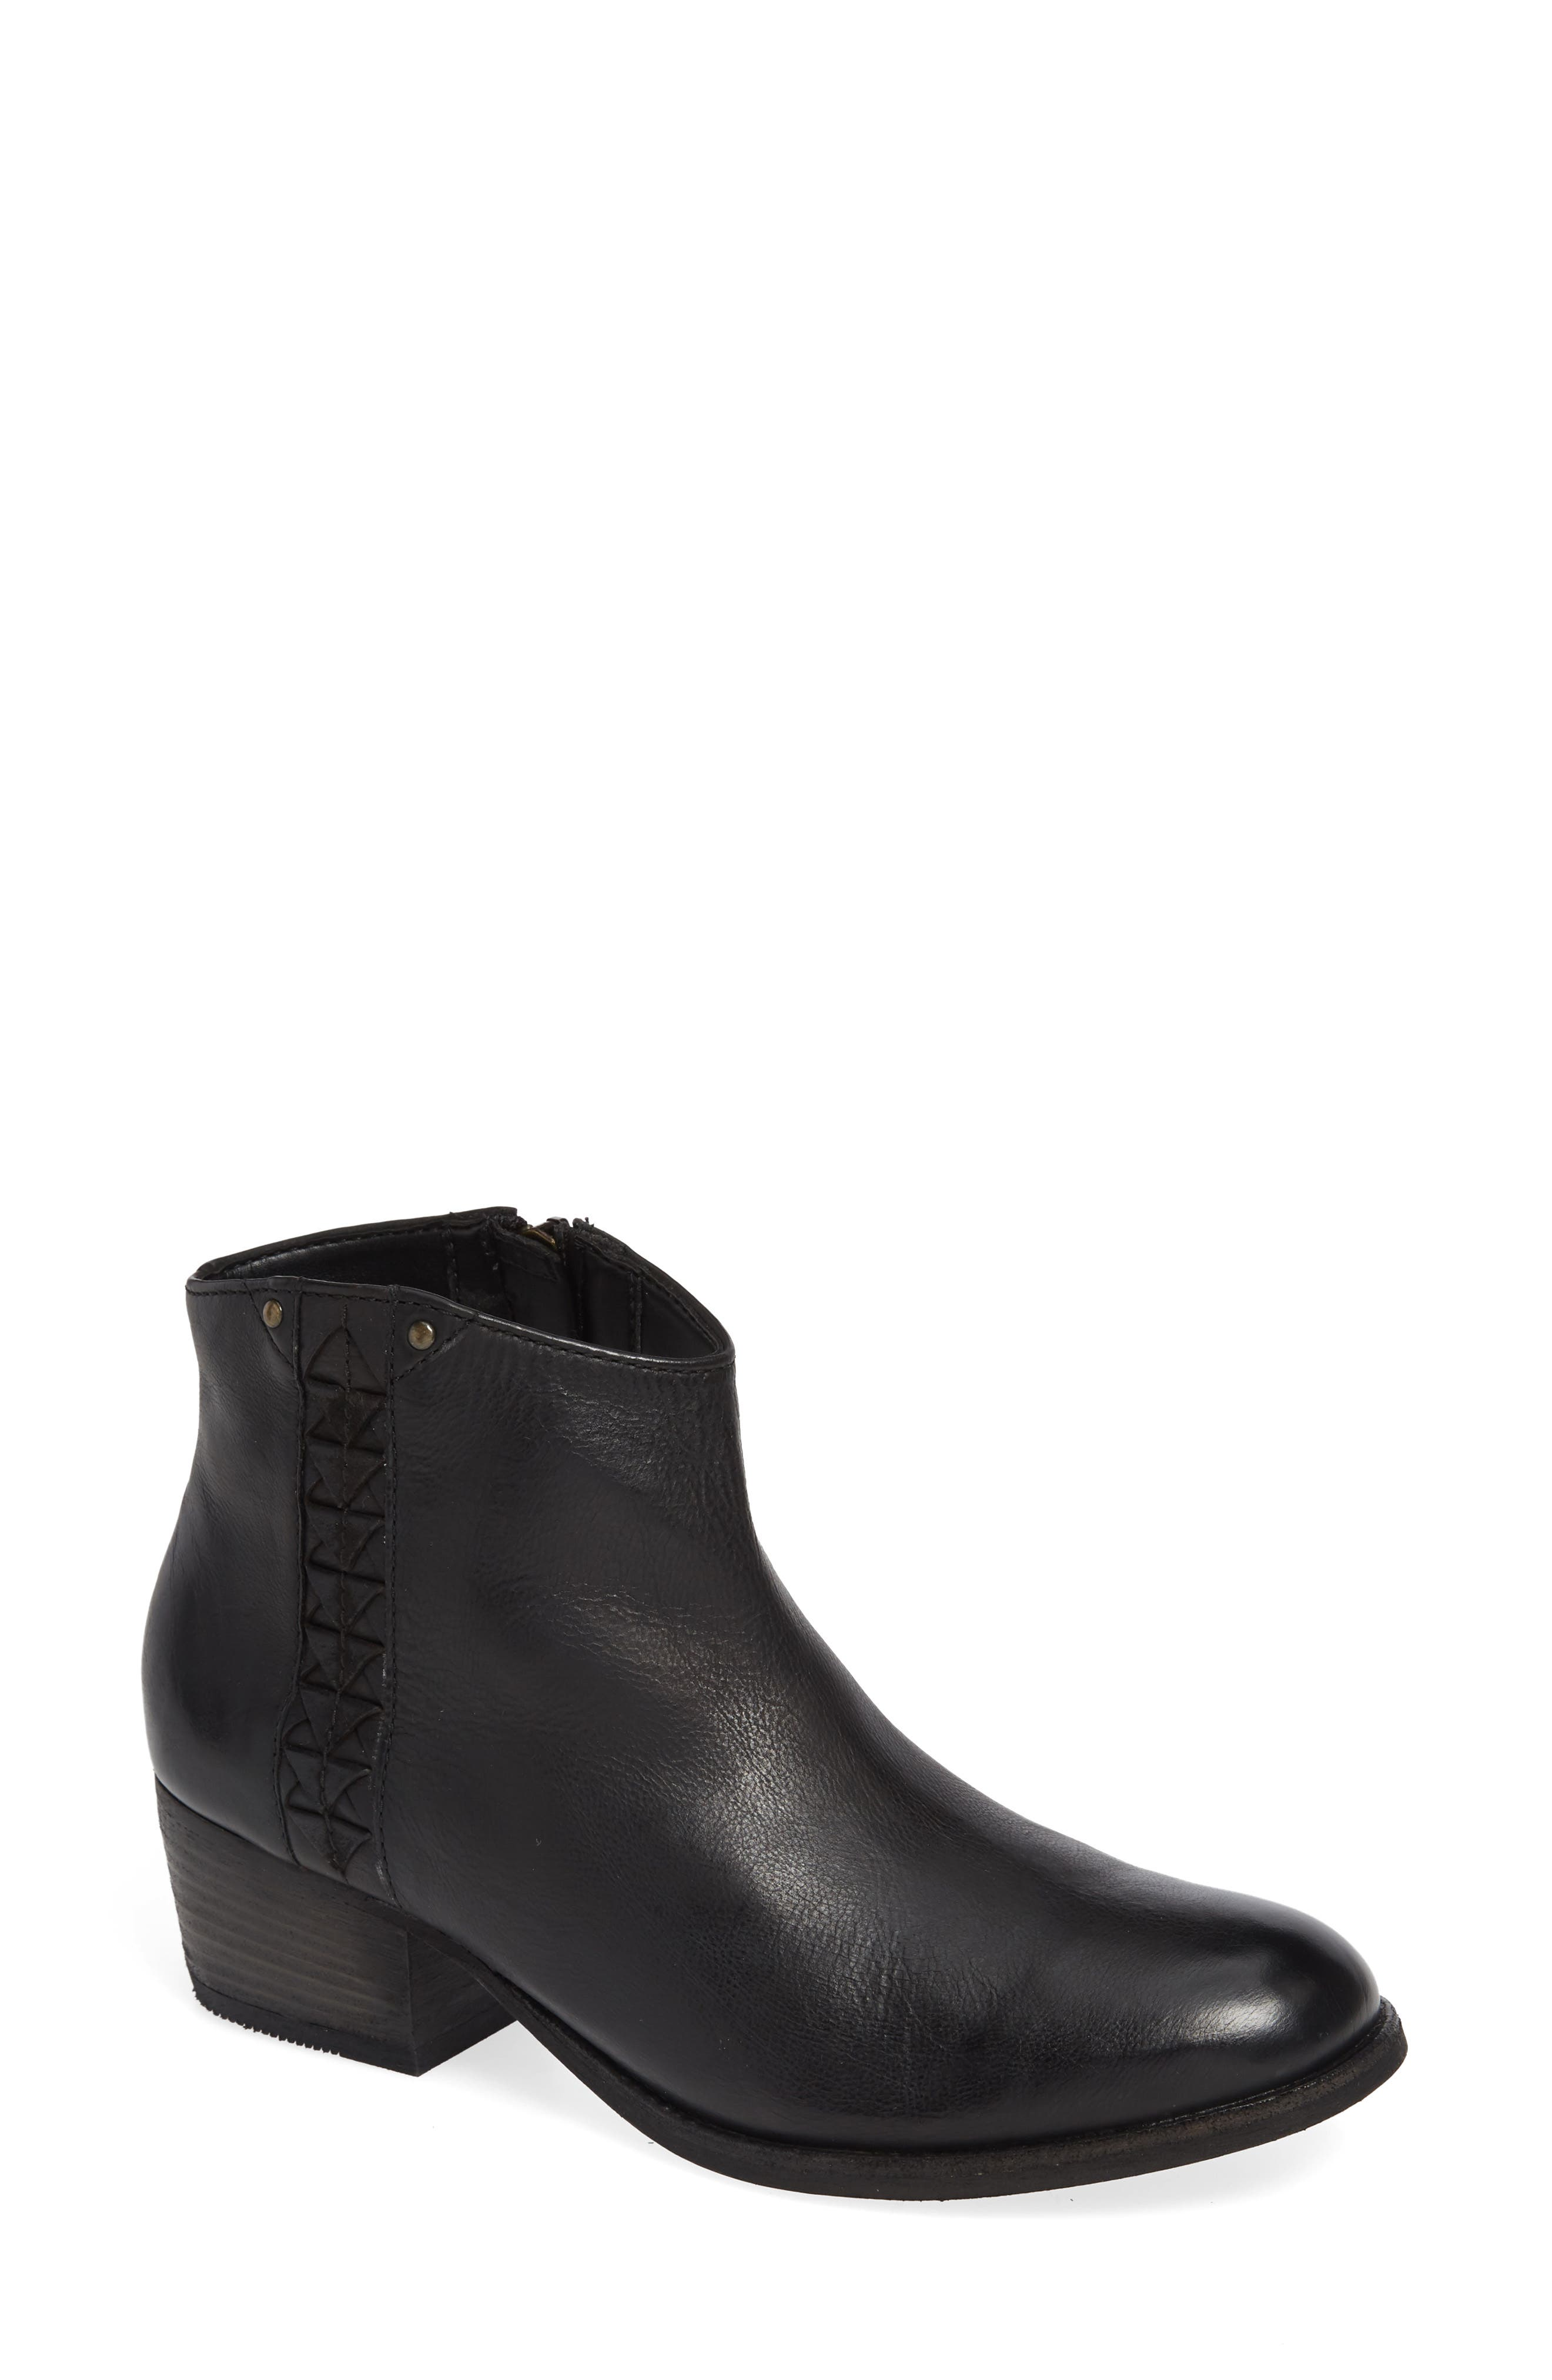 Maypearl Fawn Bootie,                         Main,                         color, BLACK LEATHER